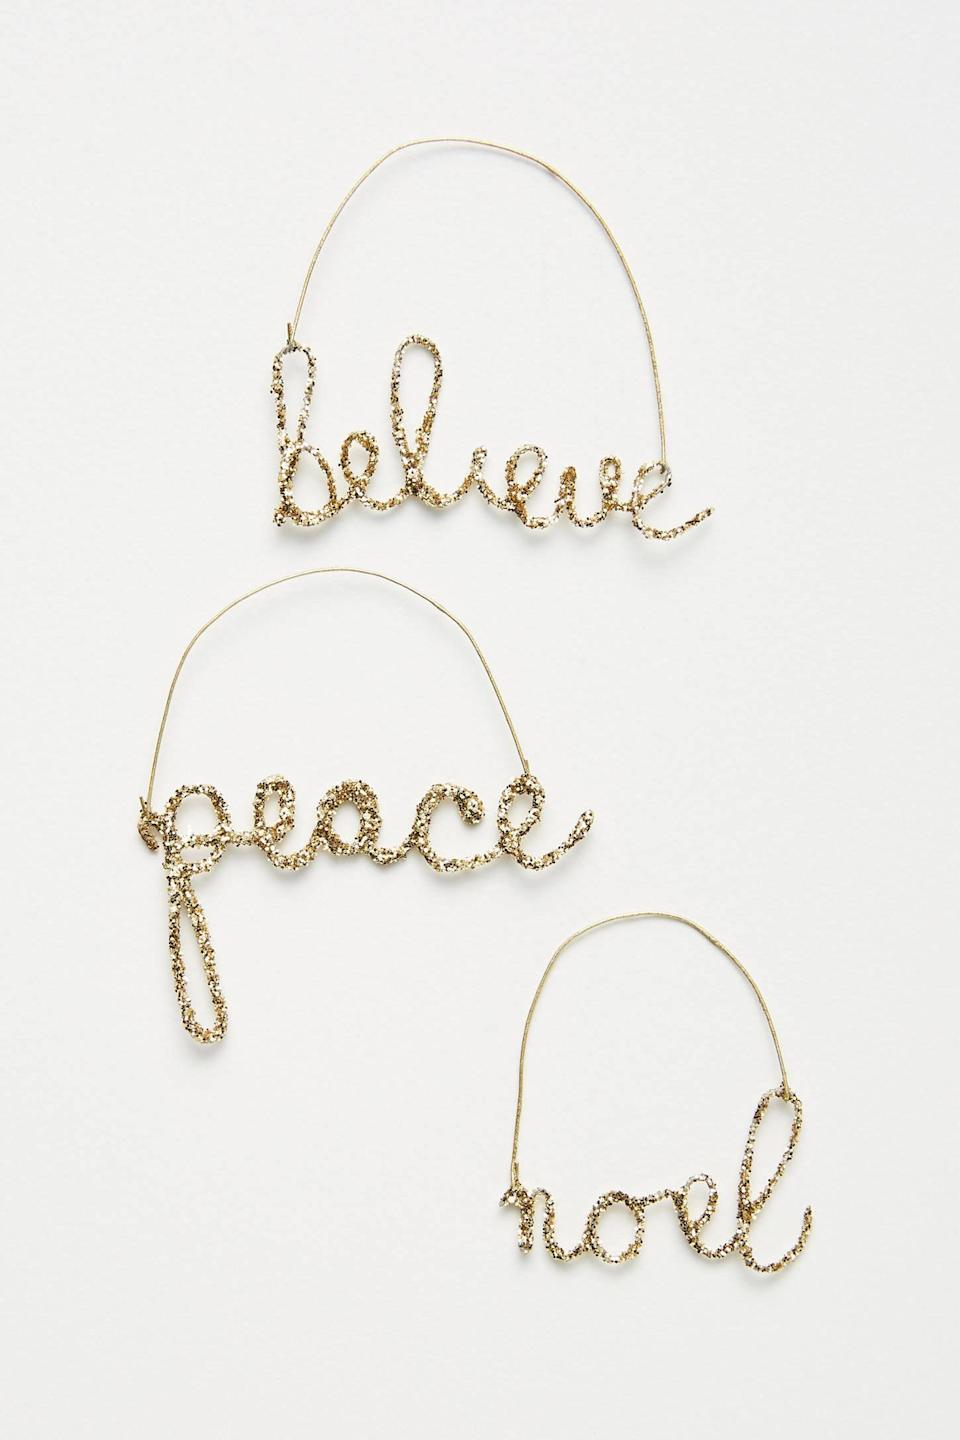 """<p>Send peaceful wishes into the world with the <a href=""""https://www.popsugar.com/buy/Festive-Wire-Word-Ornaments-Set-Three-490501?p_name=Festive%20Wire%20Word%20Ornaments%2C%20Set%20of%20Three&retailer=anthropologie.com&pid=490501&price=14&evar1=casa%3Aus&evar9=46615300&evar98=https%3A%2F%2Fwww.popsugar.com%2Fhome%2Fphoto-gallery%2F46615300%2Fimage%2F46615371%2FFestive-Wire-Word-Ornaments-Set-Three&list1=shopping%2Canthropologie%2Choliday%2Cchristmas%2Cchristmas%20decorations%2Choliday%20decor%2Chome%20shopping&prop13=mobile&pdata=1"""" rel=""""nofollow noopener"""" class=""""link rapid-noclick-resp"""" target=""""_blank"""" data-ylk=""""slk:Festive Wire Word Ornaments, Set of Three"""">Festive Wire Word Ornaments, Set of Three</a> ($14).</p>"""